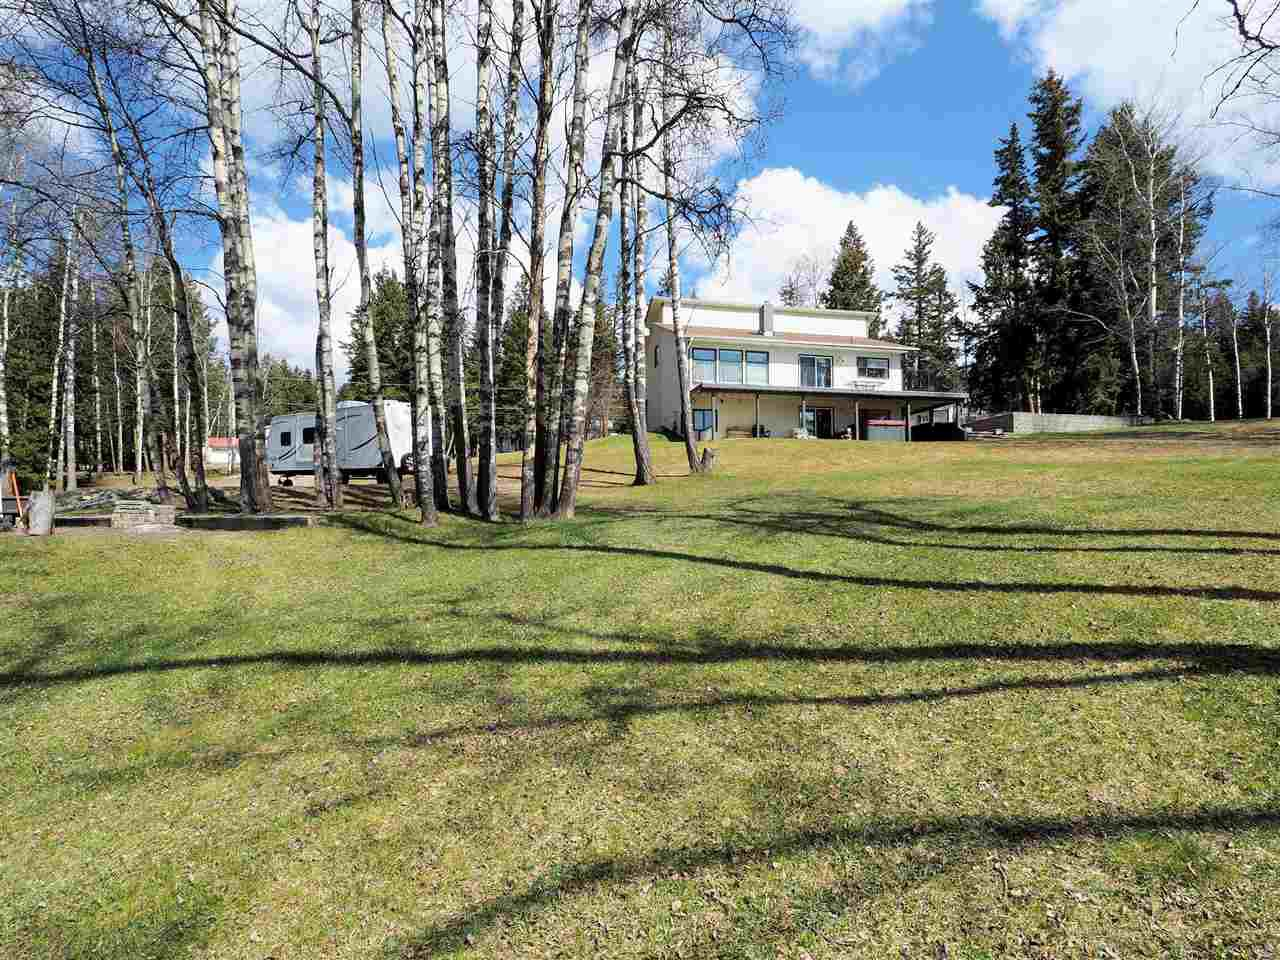 Photo 3: Photos: 6265 MERKLEY Crescent: Horse Lake House for sale (100 Mile House (Zone 10))  : MLS®# R2363616